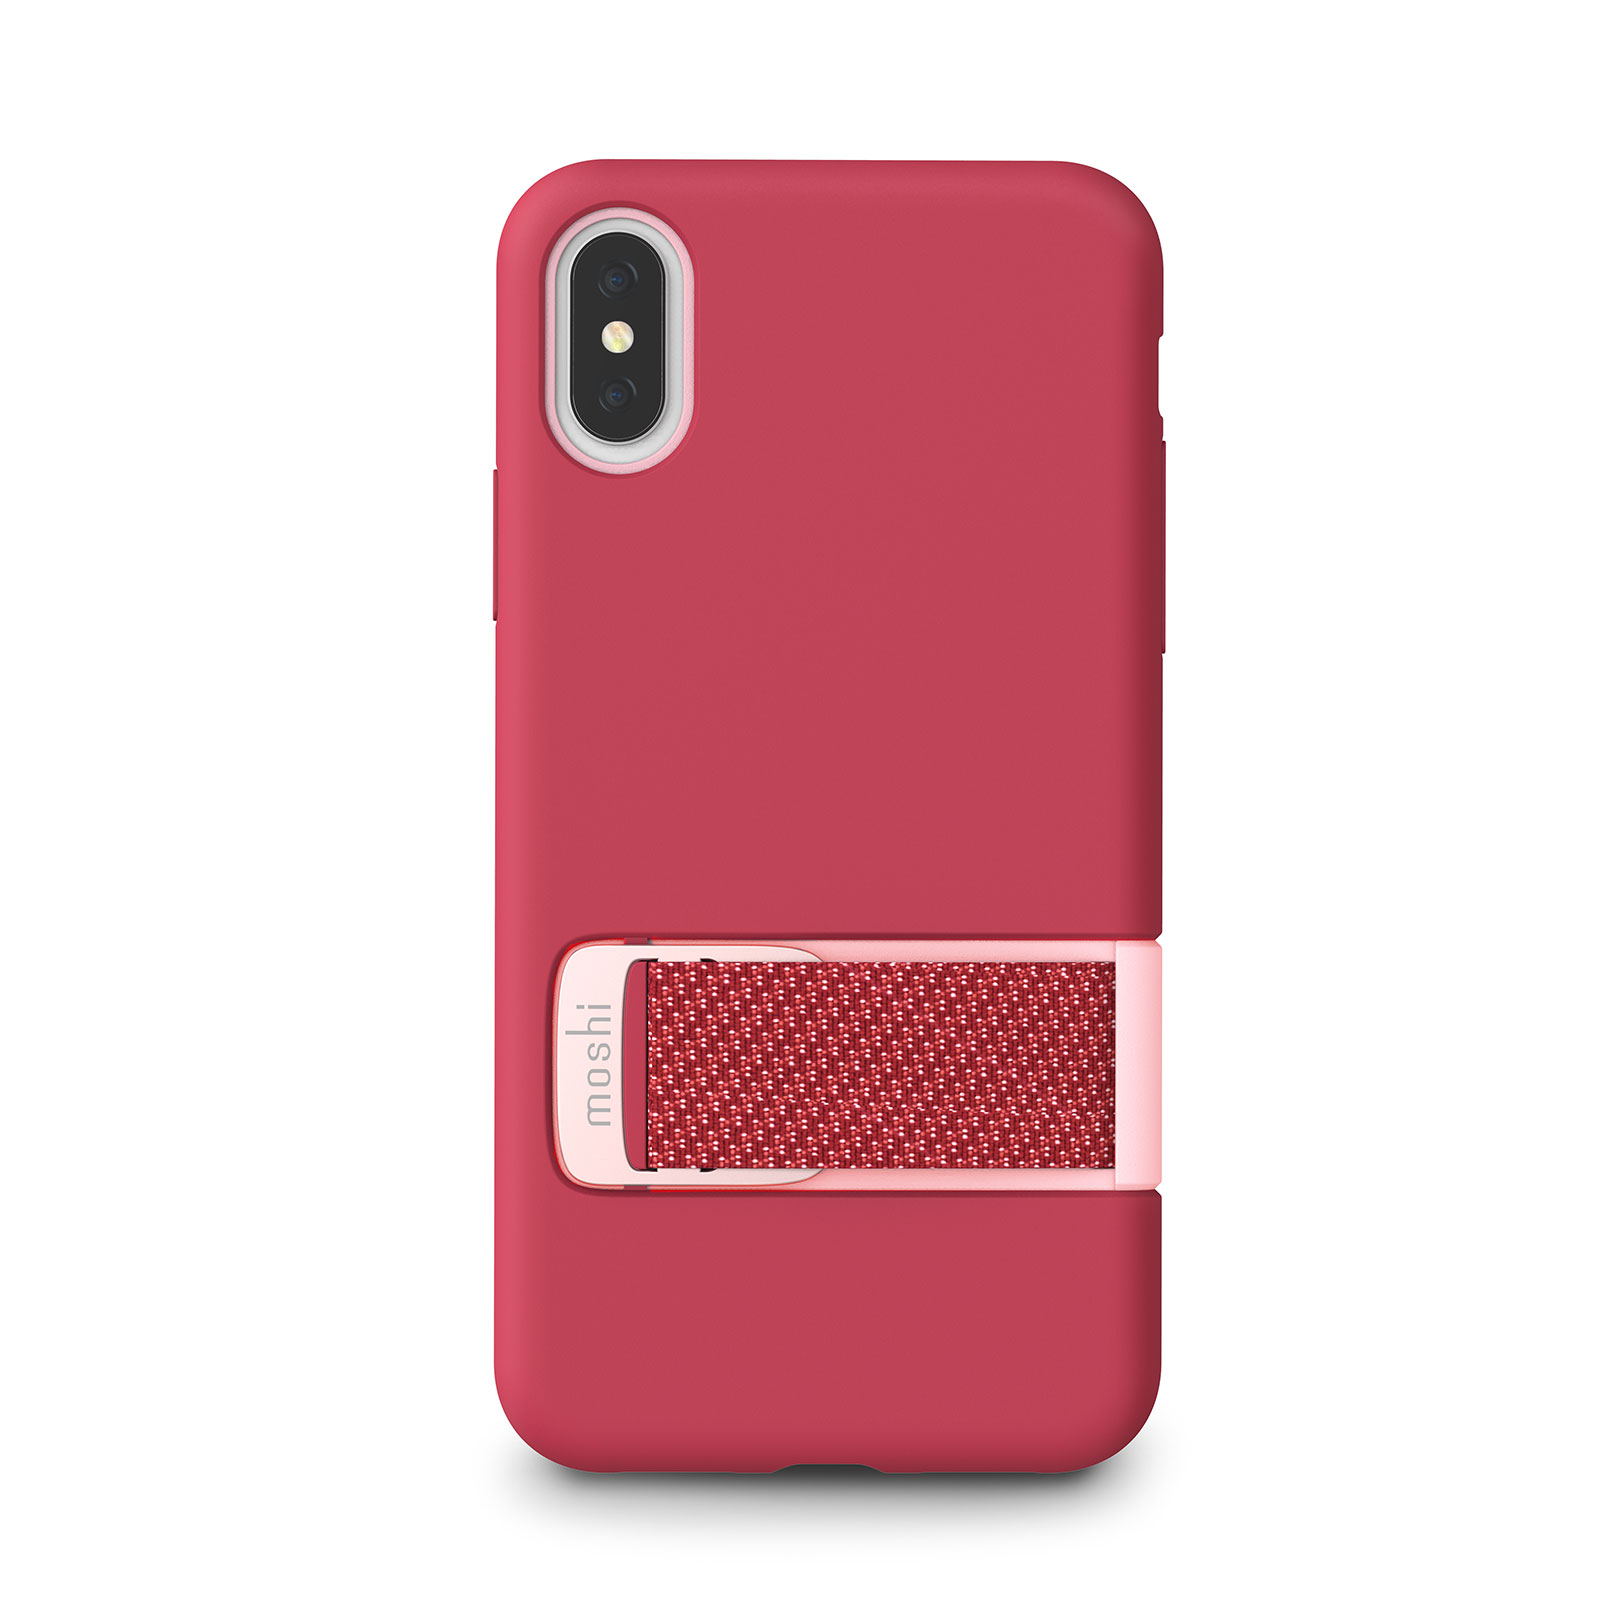 huge discount f4b87 b1a07 Capto for iPhone XS/X